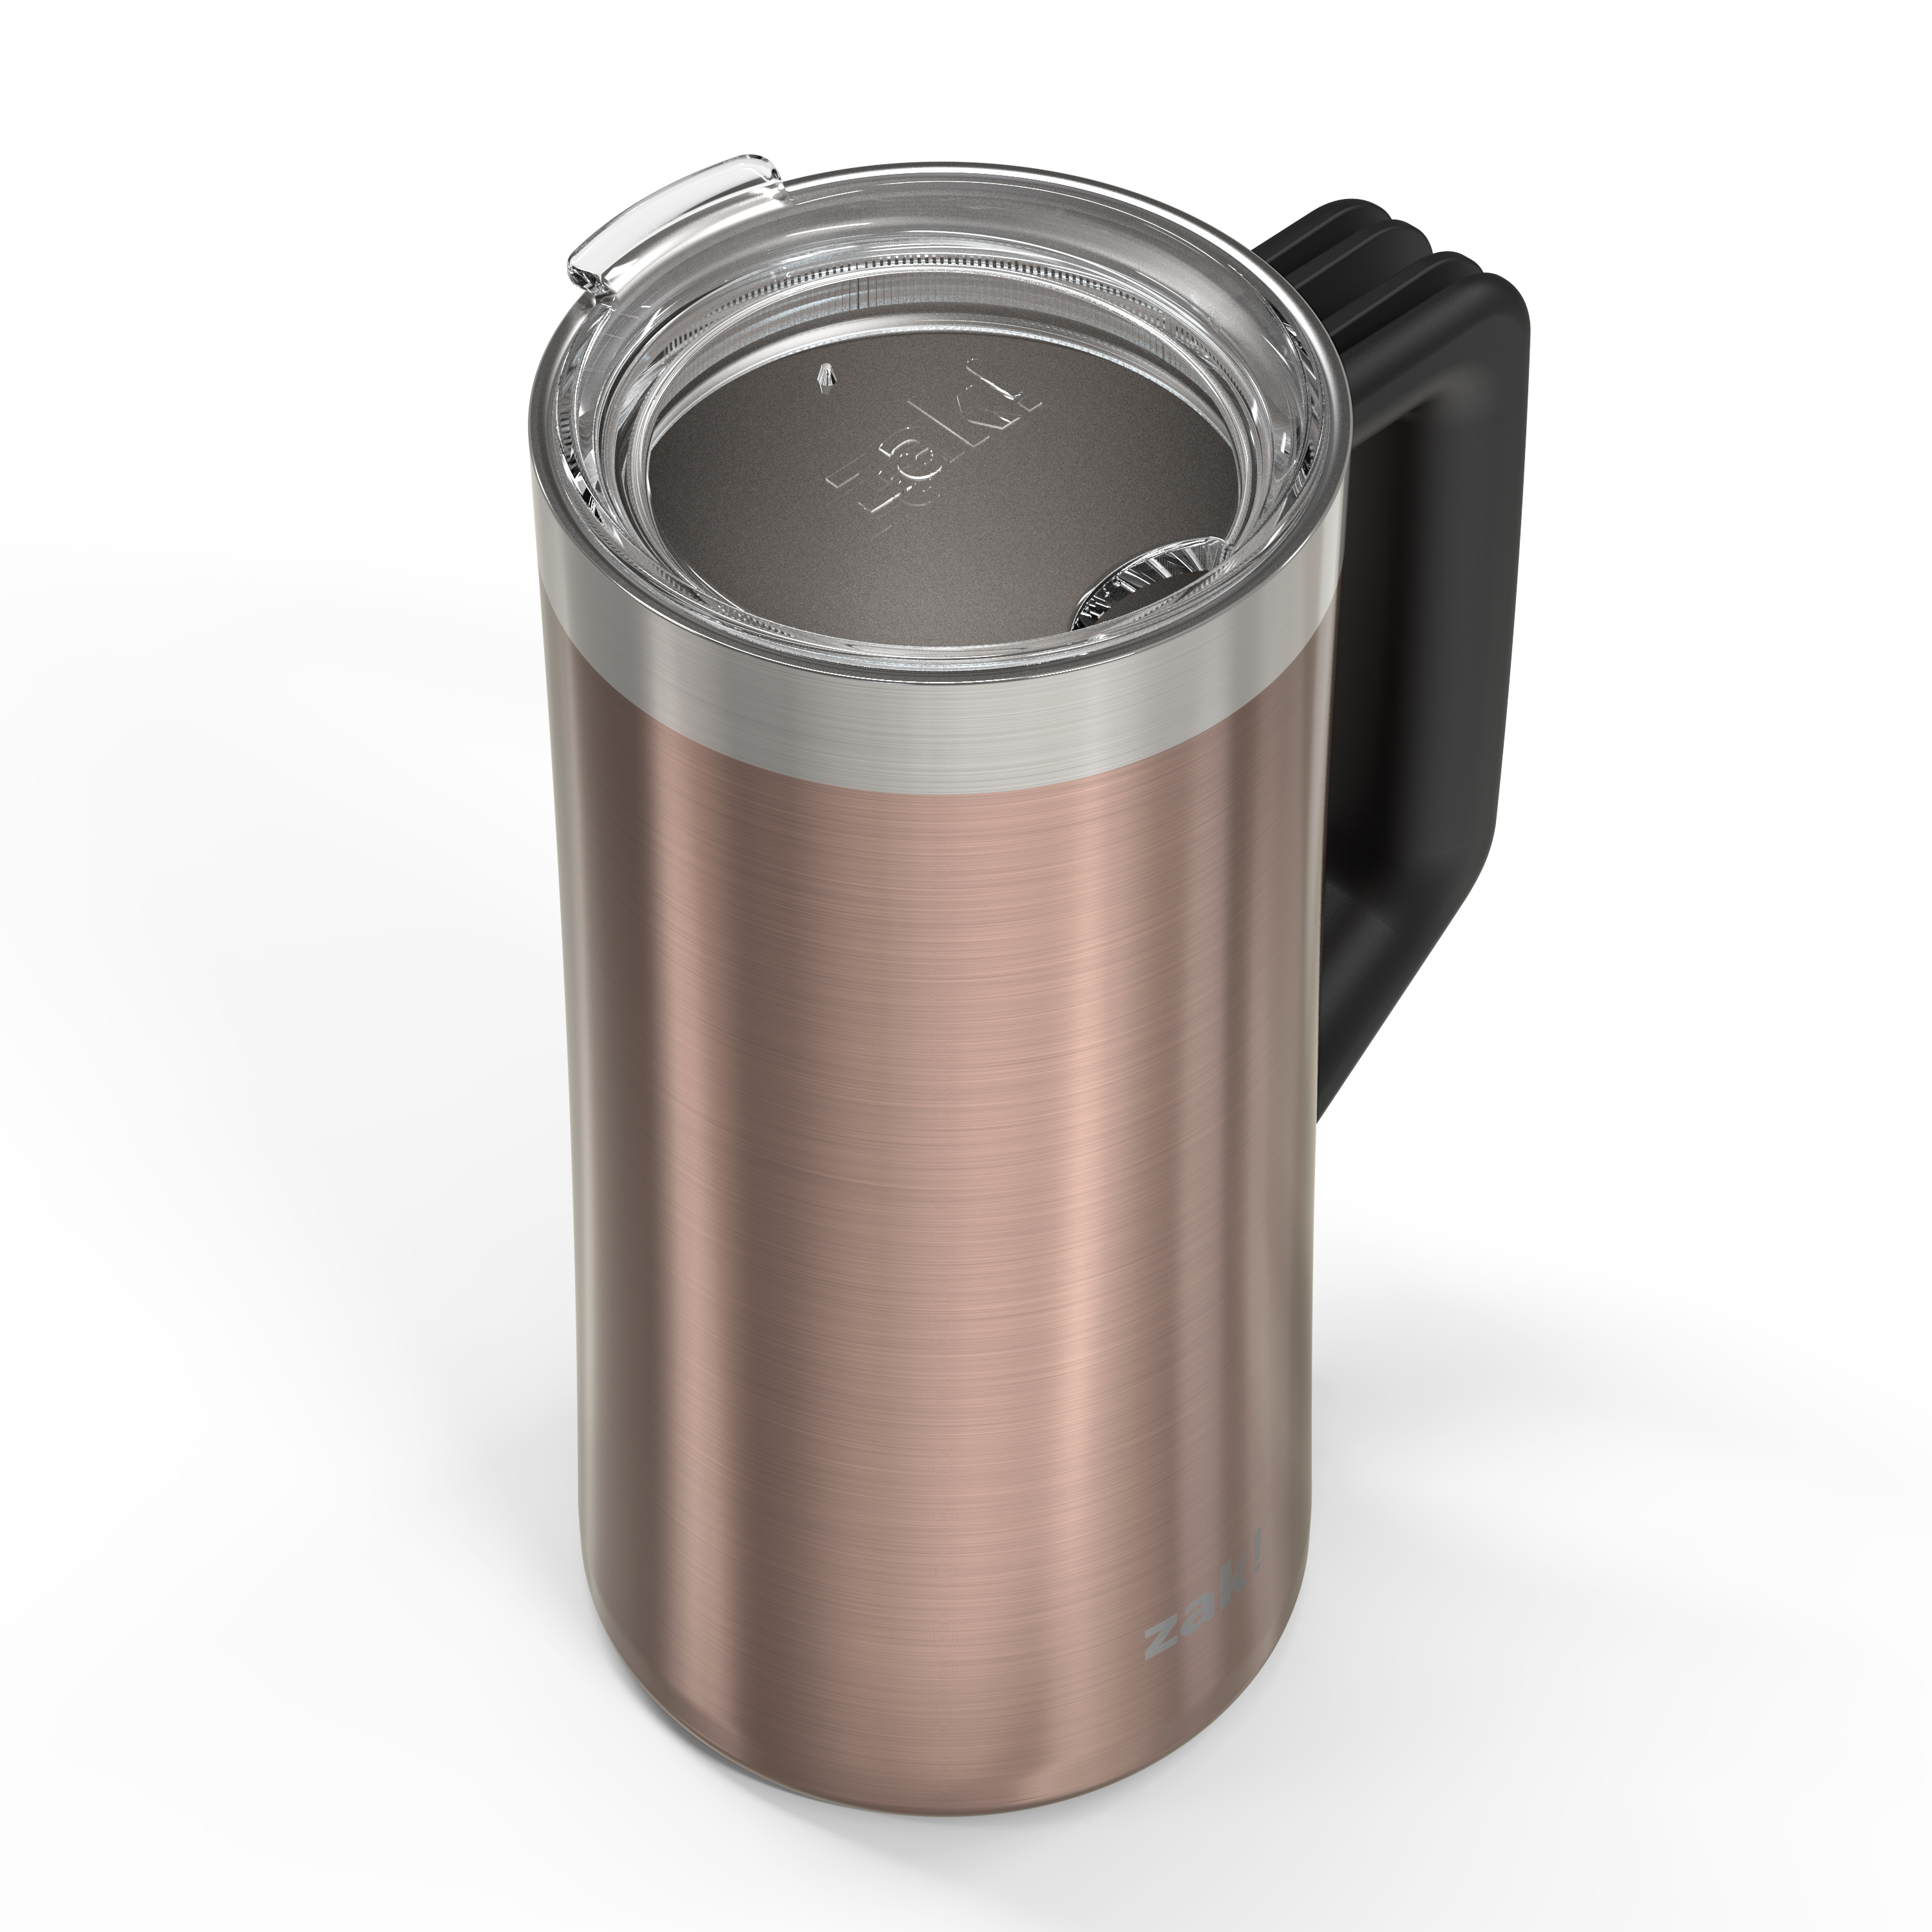 Creston 25 ounce Vacuum Insulated Stainless Steel Tumbler, Rose Gold slideshow image 3